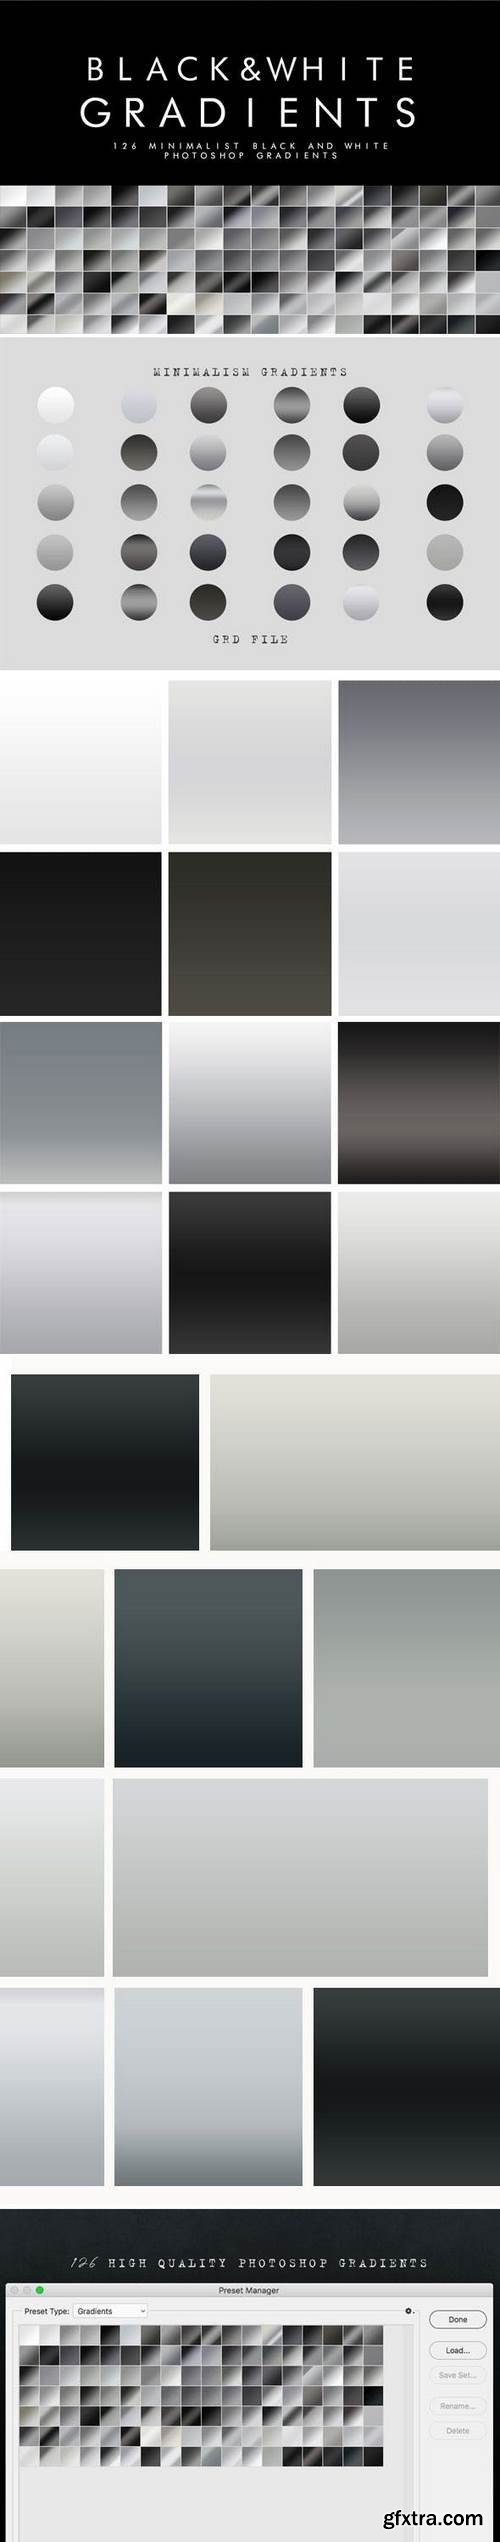 Graphicriver - 126 Black and White Gradients 21925521